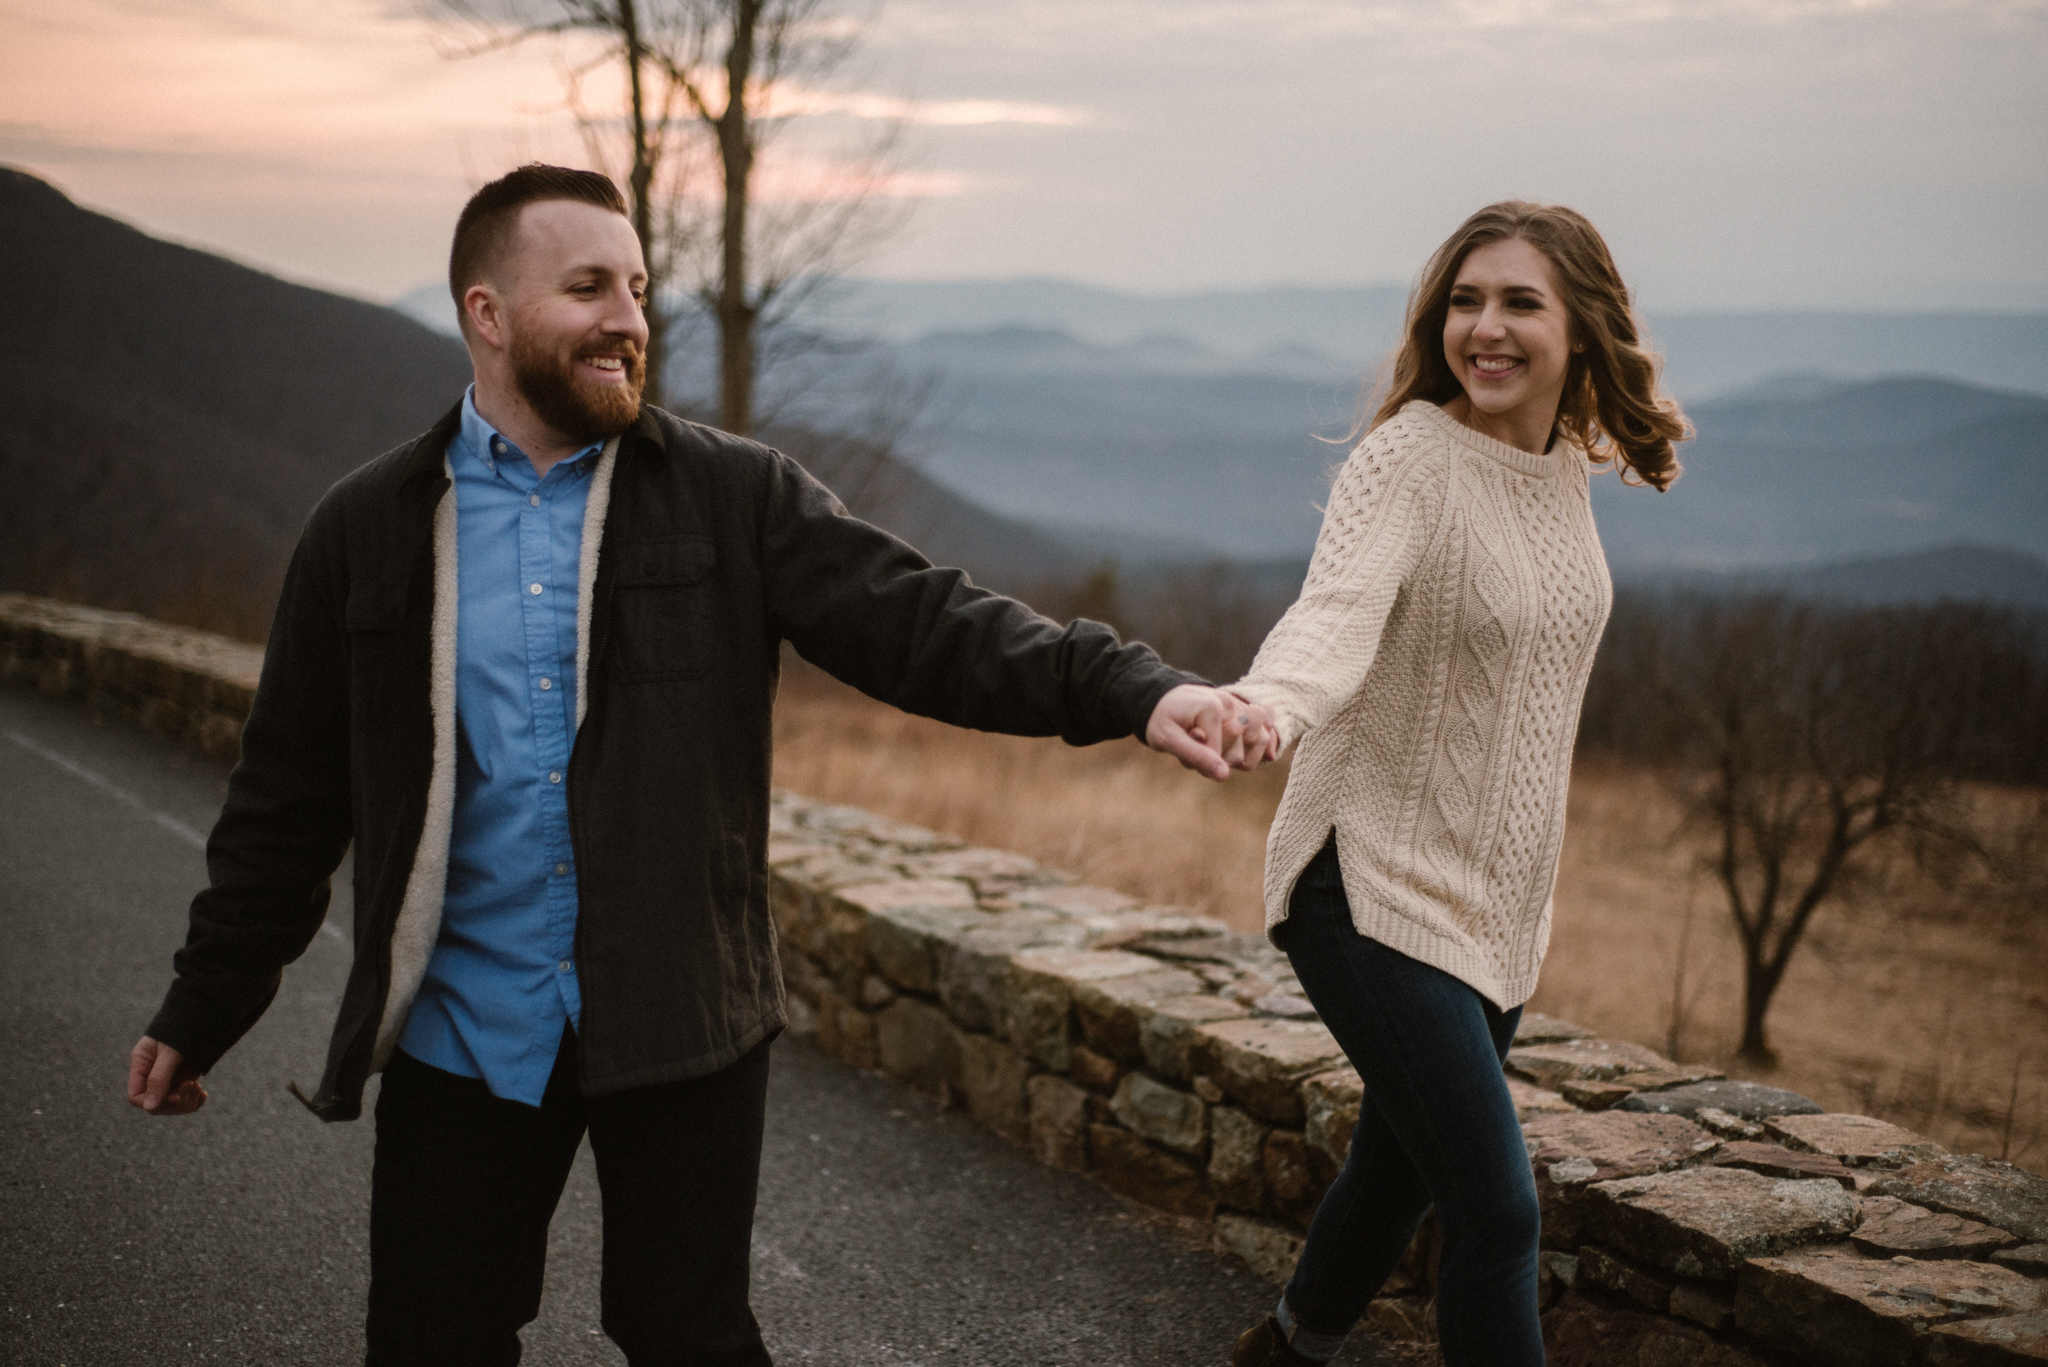 Nicole and Victor - Shenandoah National Park Engagement Photography - Blue Ridge Mountains Adventure Photography - White Sails Creative Photography_33.jpg